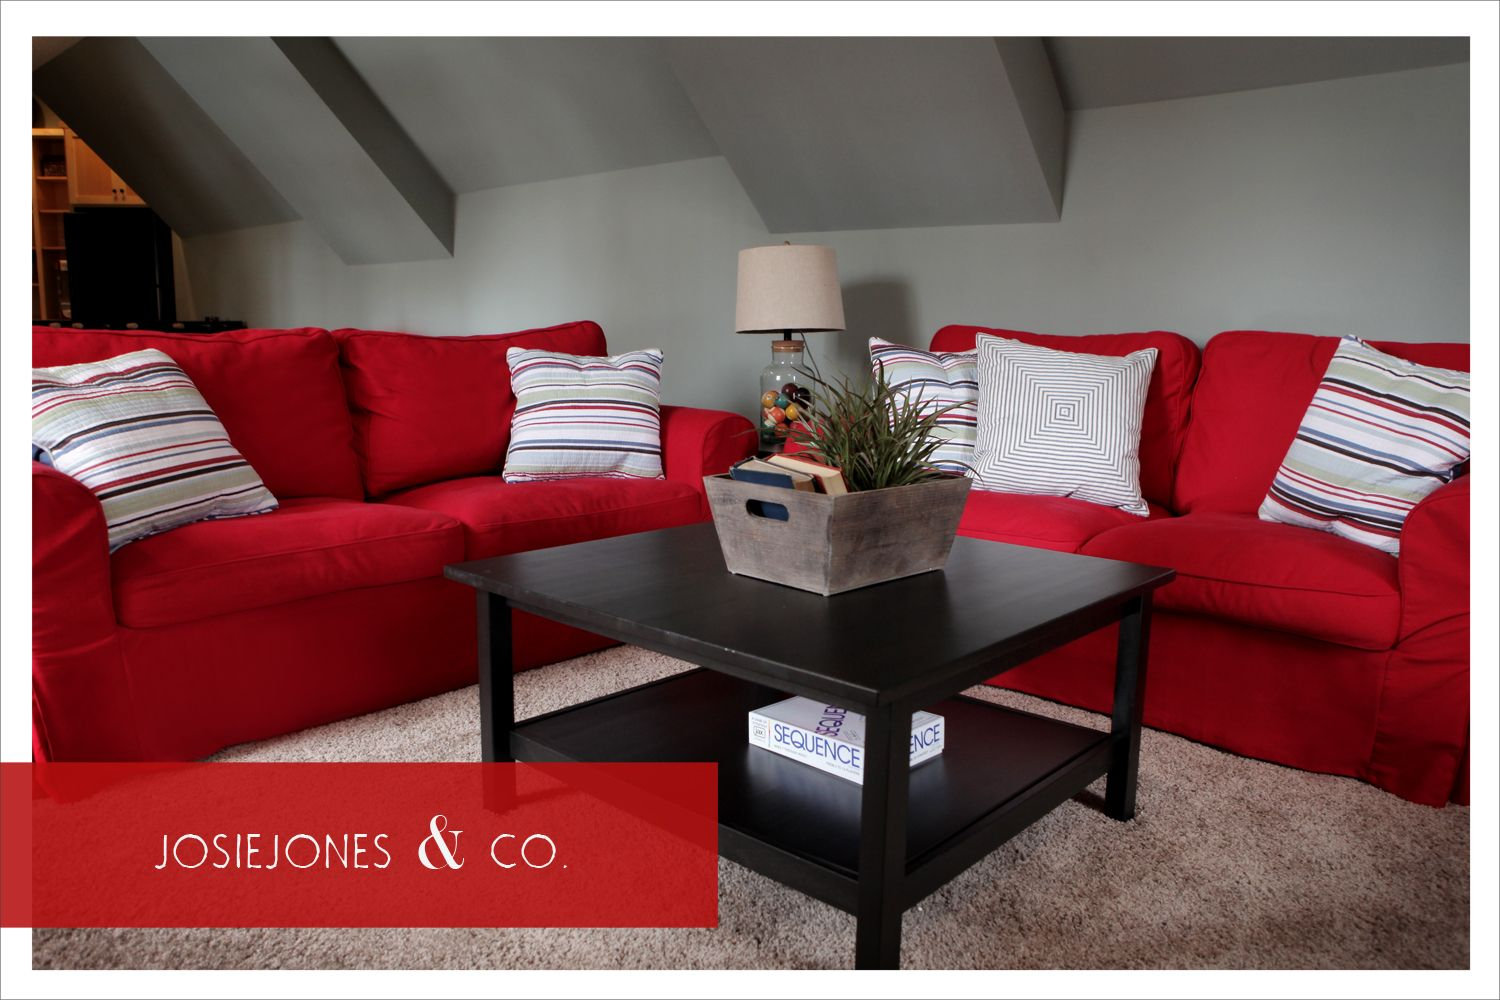 Wall Color Ideas For Dining Room That Will Serve As A Lounge With My Red Couch